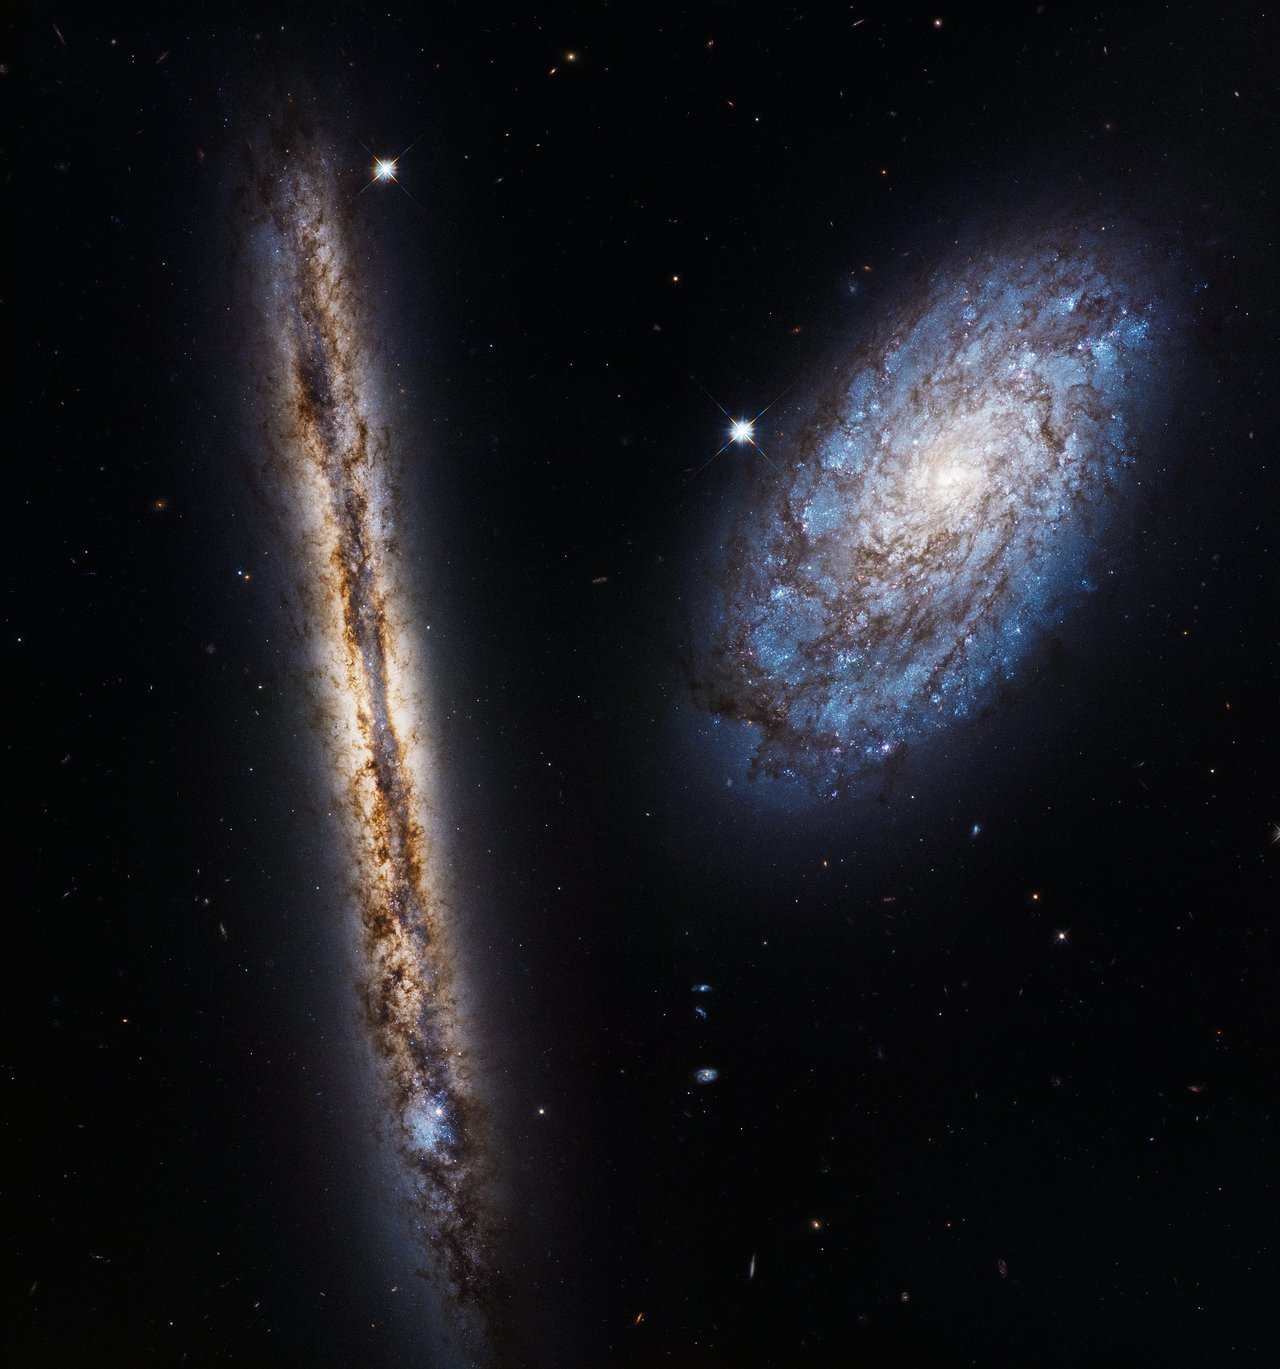 Spiral Galaxies Shimmer in Hubble Telescope's 27th Birthday Photos